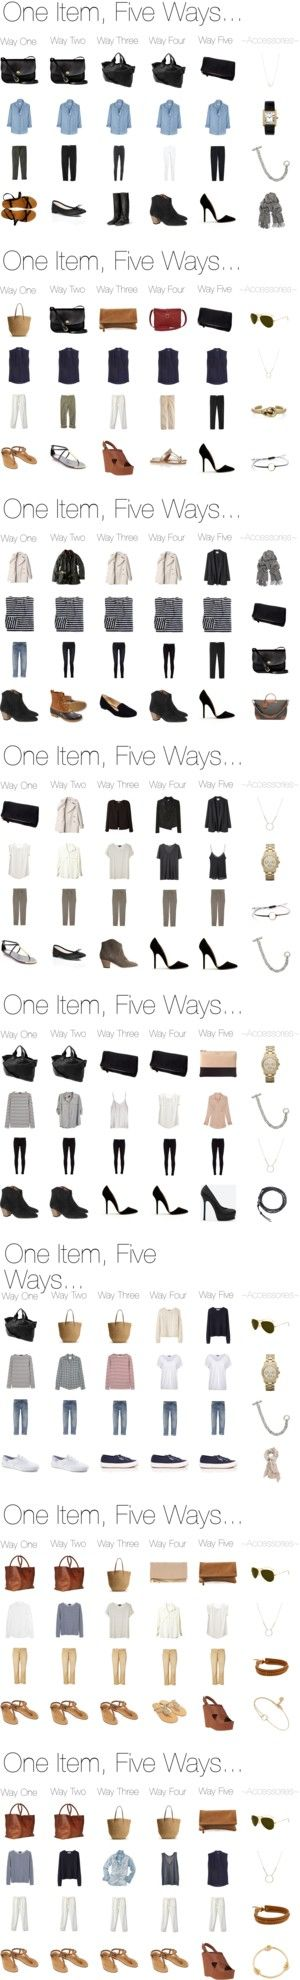 One Item, Five Ways...